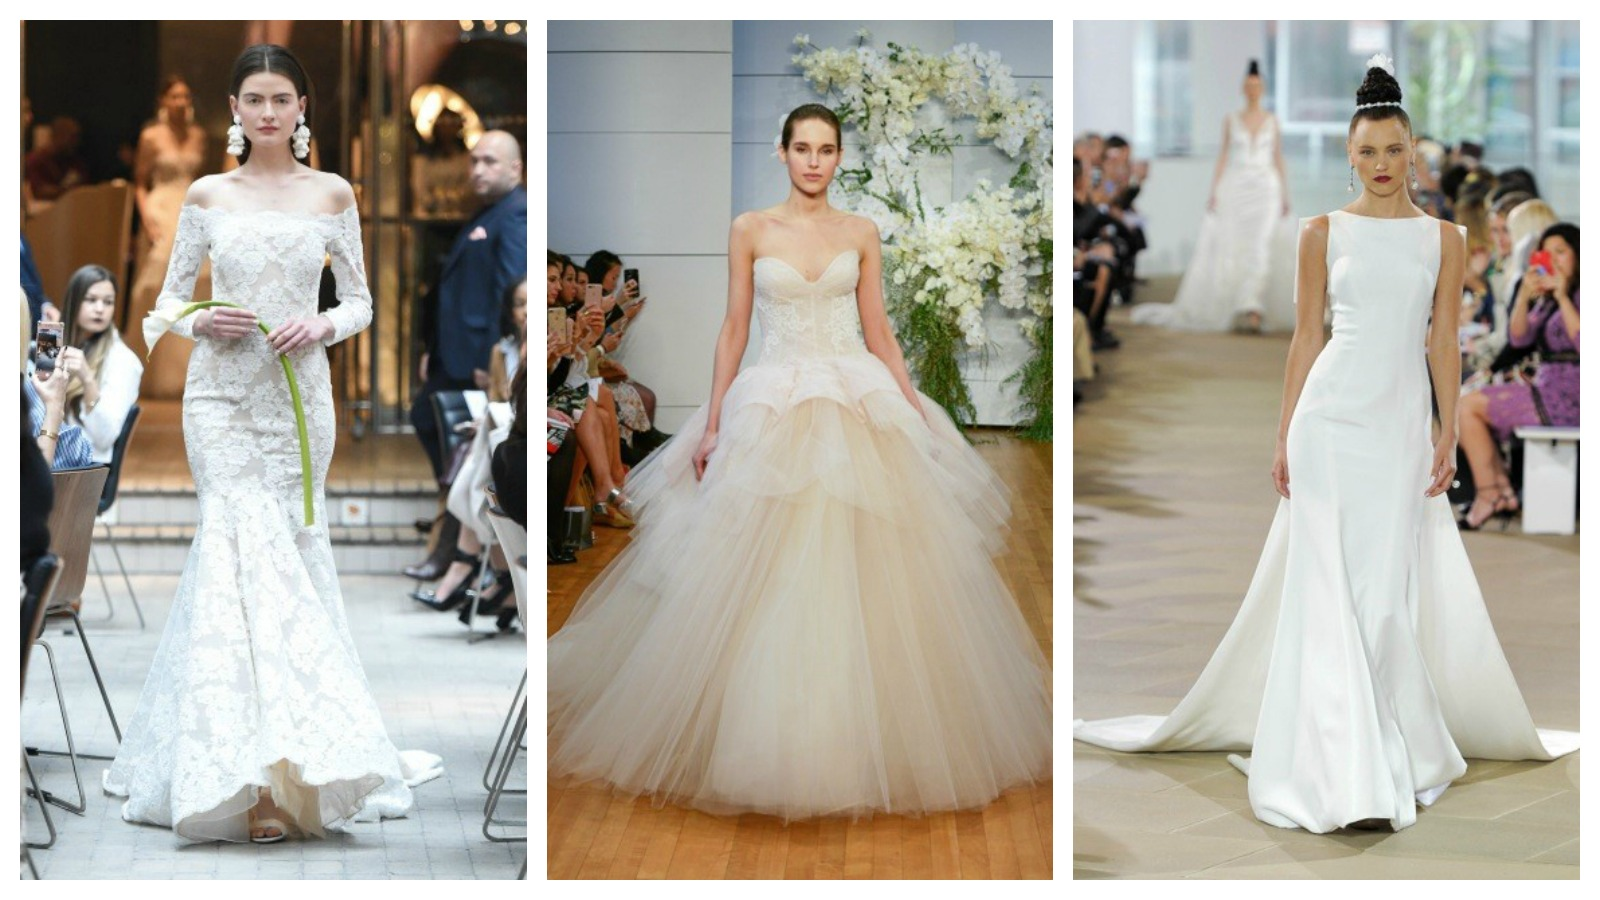 Are you recently engaged and starting to plan your special day? Have you thought about the dress you will be wearing? With the help of Carine Krawiec of Carine's Bridal Atelier in Georgetown, we have rounded up the top 7 bridal trends for spring 2018. Flip through our gallery to find out which trend you will be rocking down the aisle on your wedding day! If you are interested in any of the dresses featured in this post they can all be ordered from Carine's Bridal Atelier (http://www.carinesbridal.com/ ). (Photos: from left to right: Sachin & Babi, Monique Lhuillier, Ines di Santo)